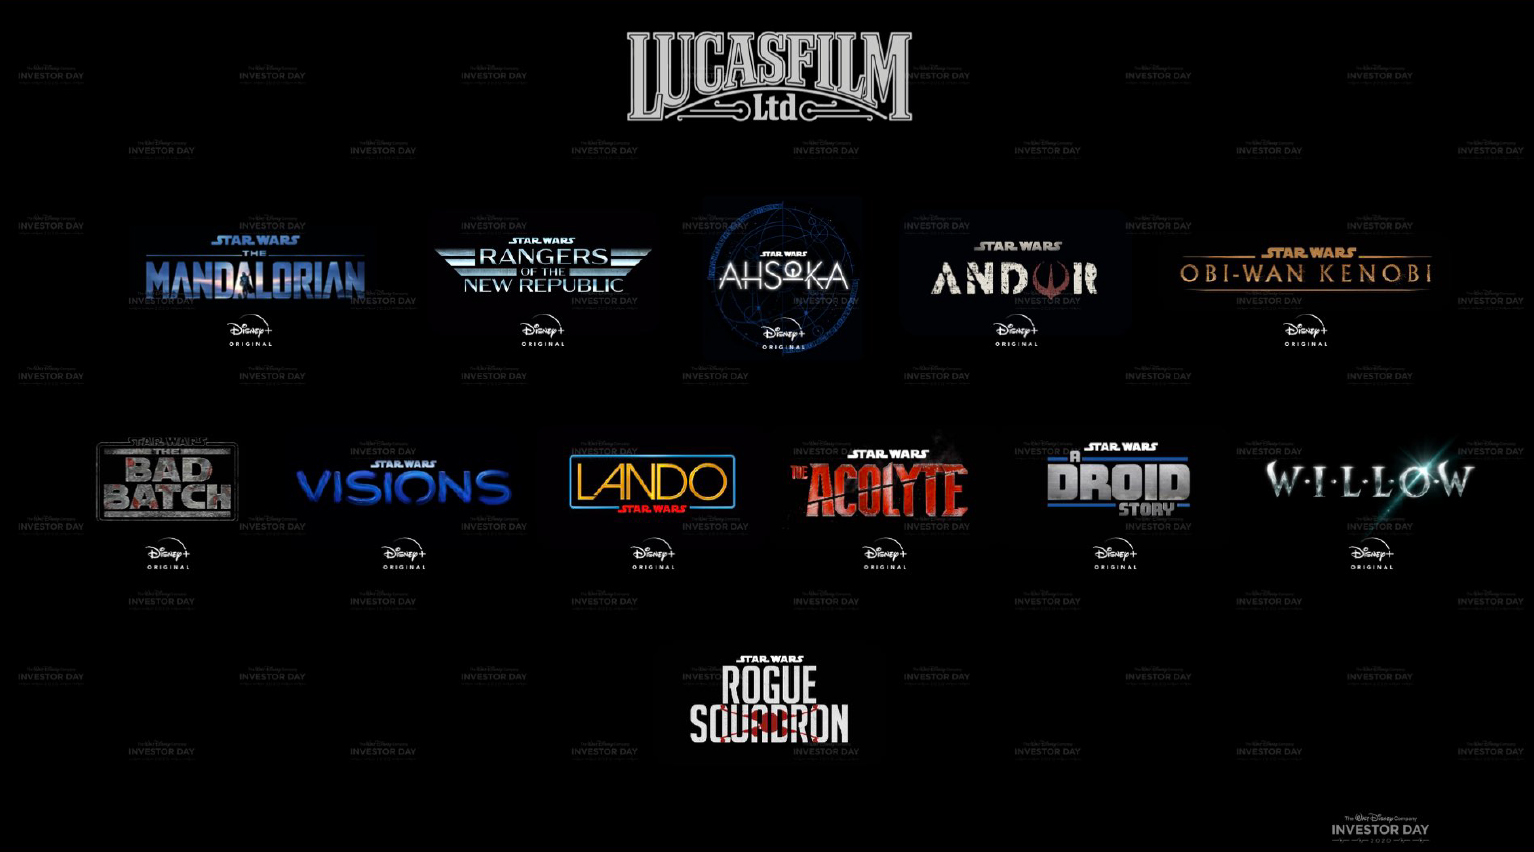 Image Gallery of Lucasfilm Star Wars Logos Revealed During Disney Investor Day 2020 - Jedi News